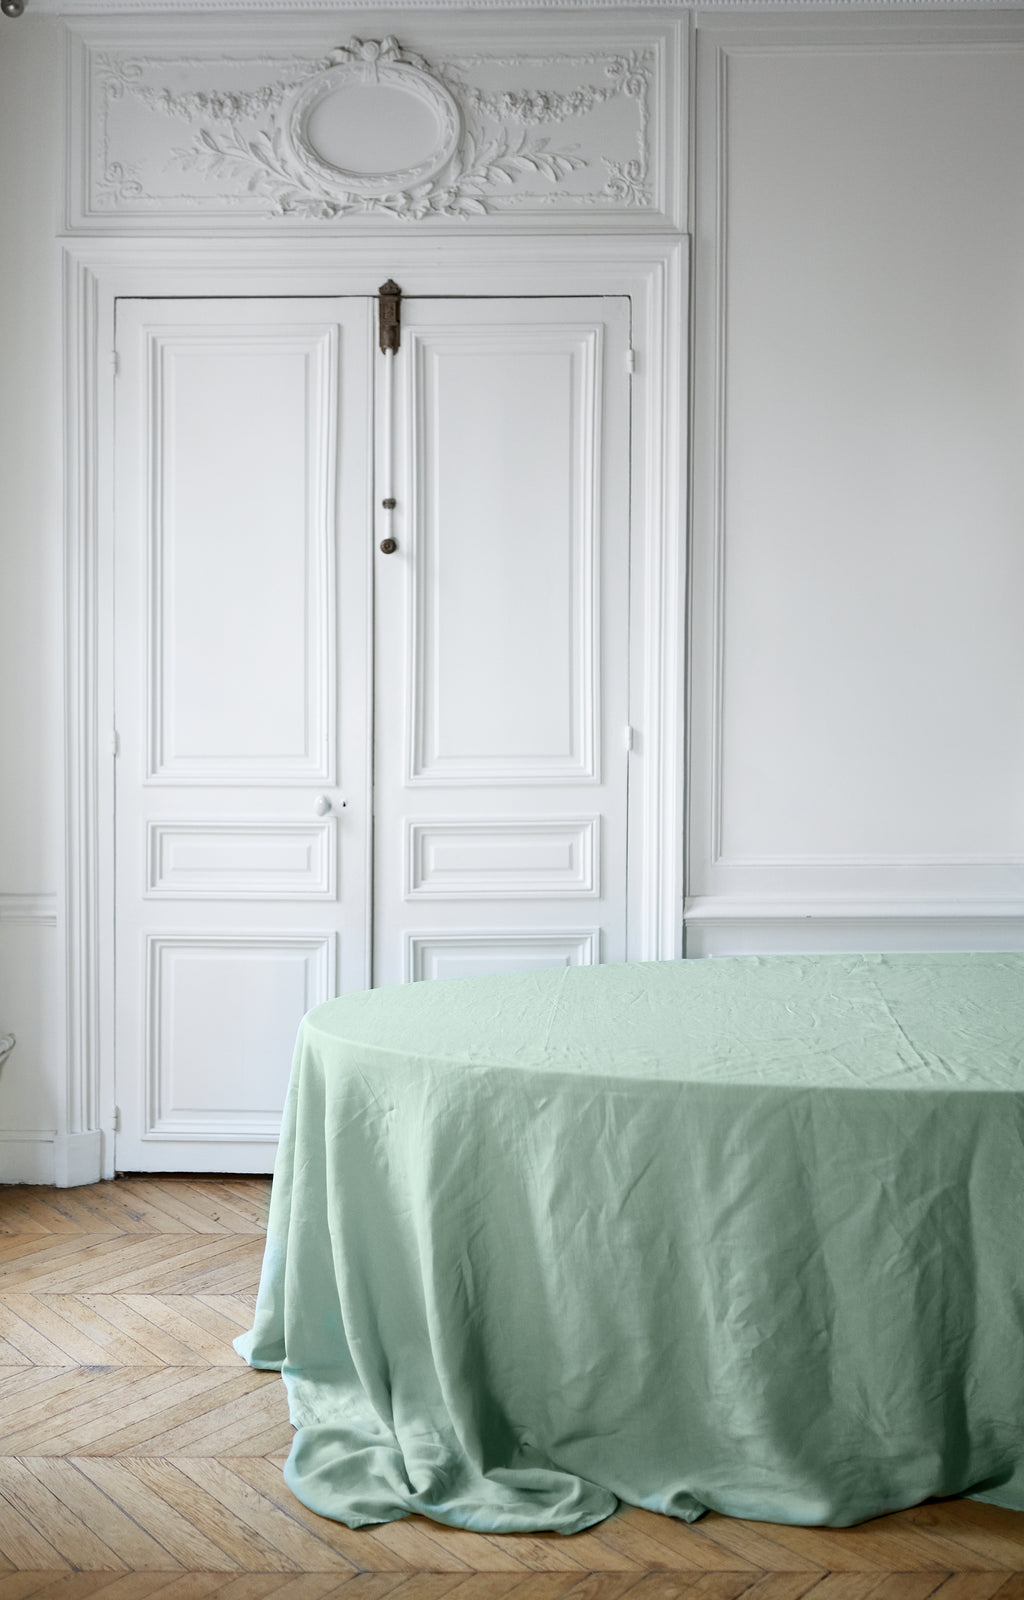 Mint Linens from www.madamedelamaison.com